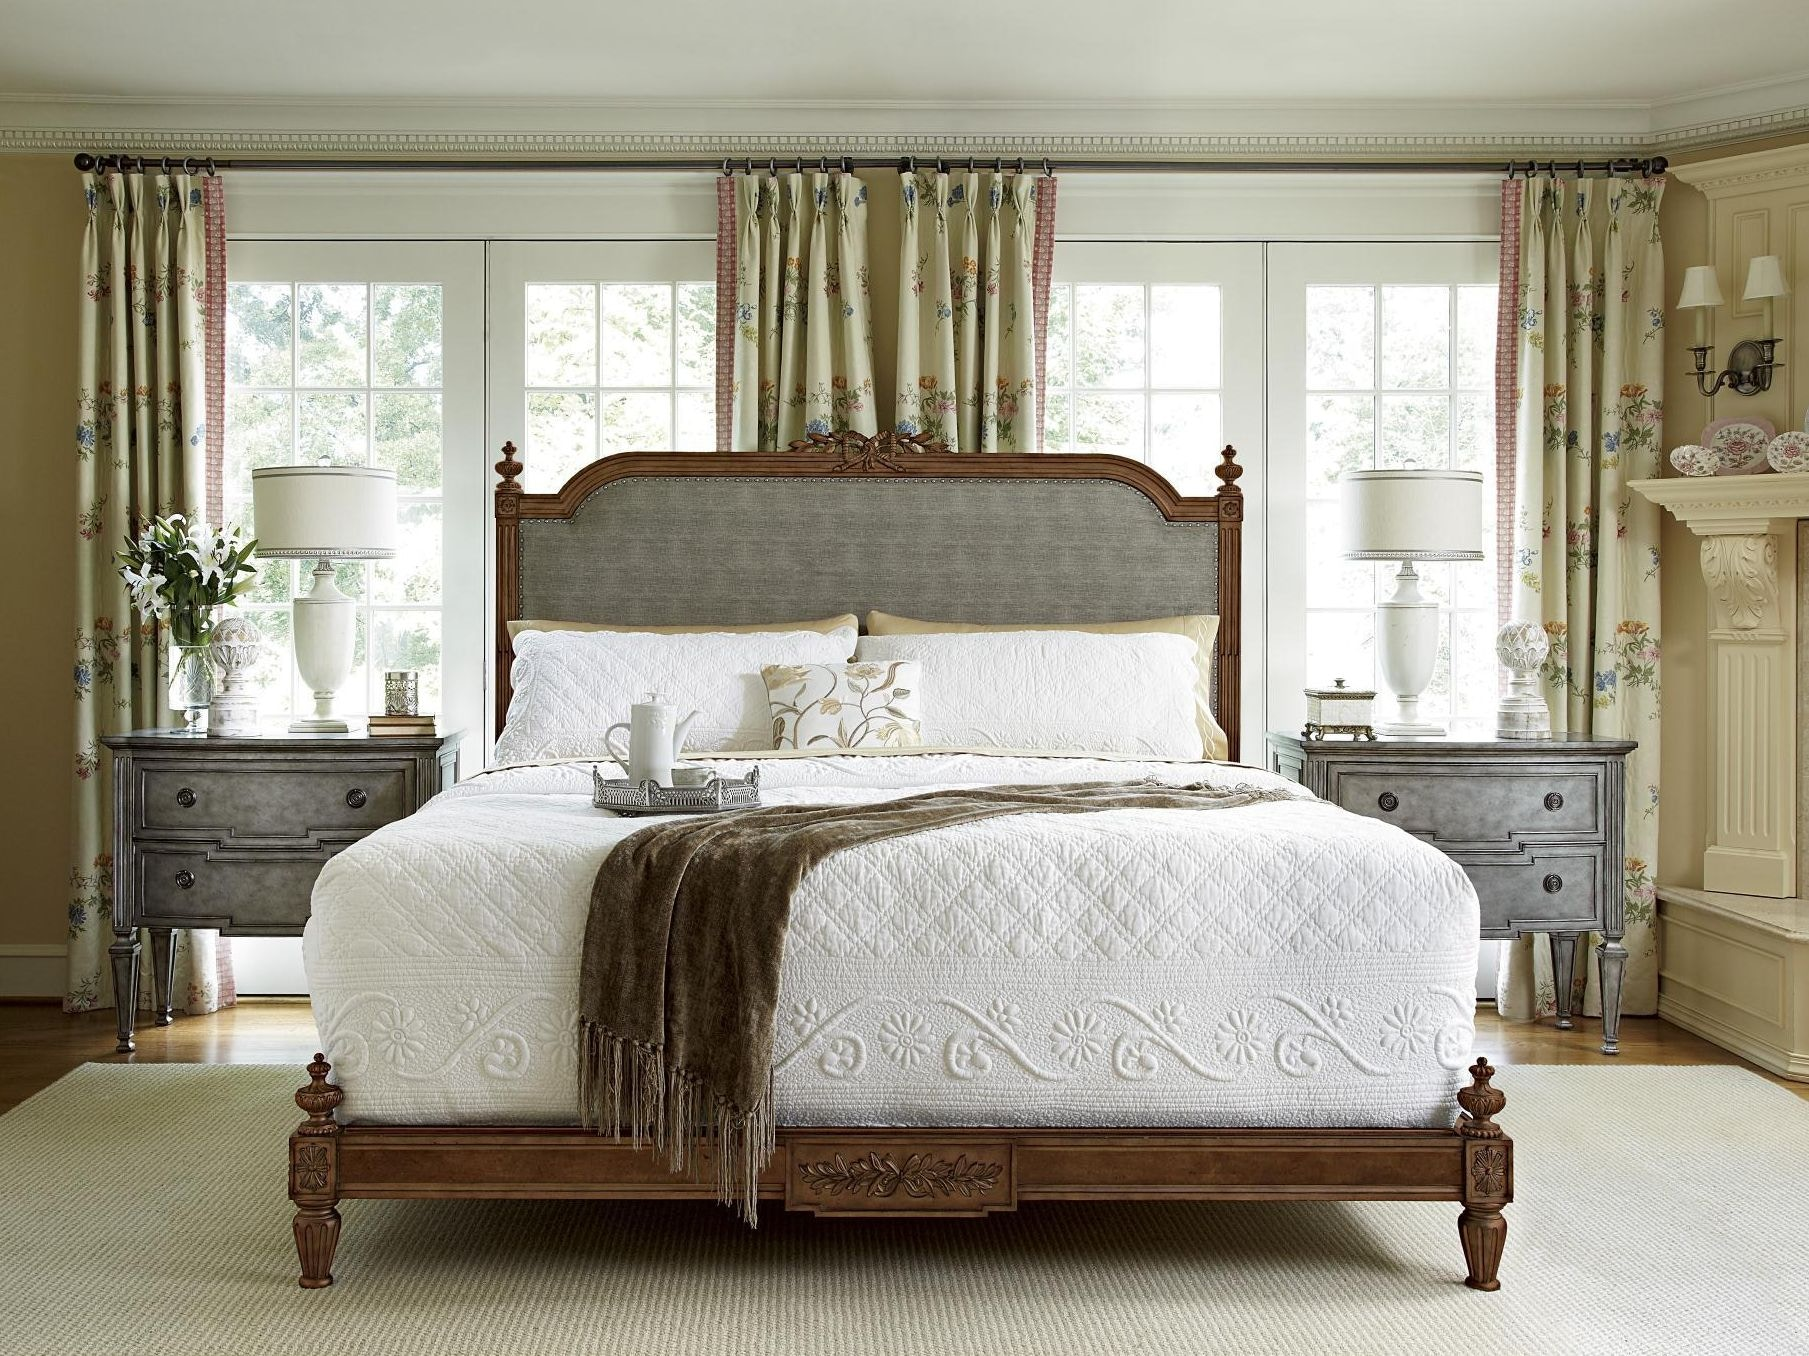 vanderbilt furniture. Fine Furniture Design Boulevard King Bed Vanderbilt 1340-467/468/469 A